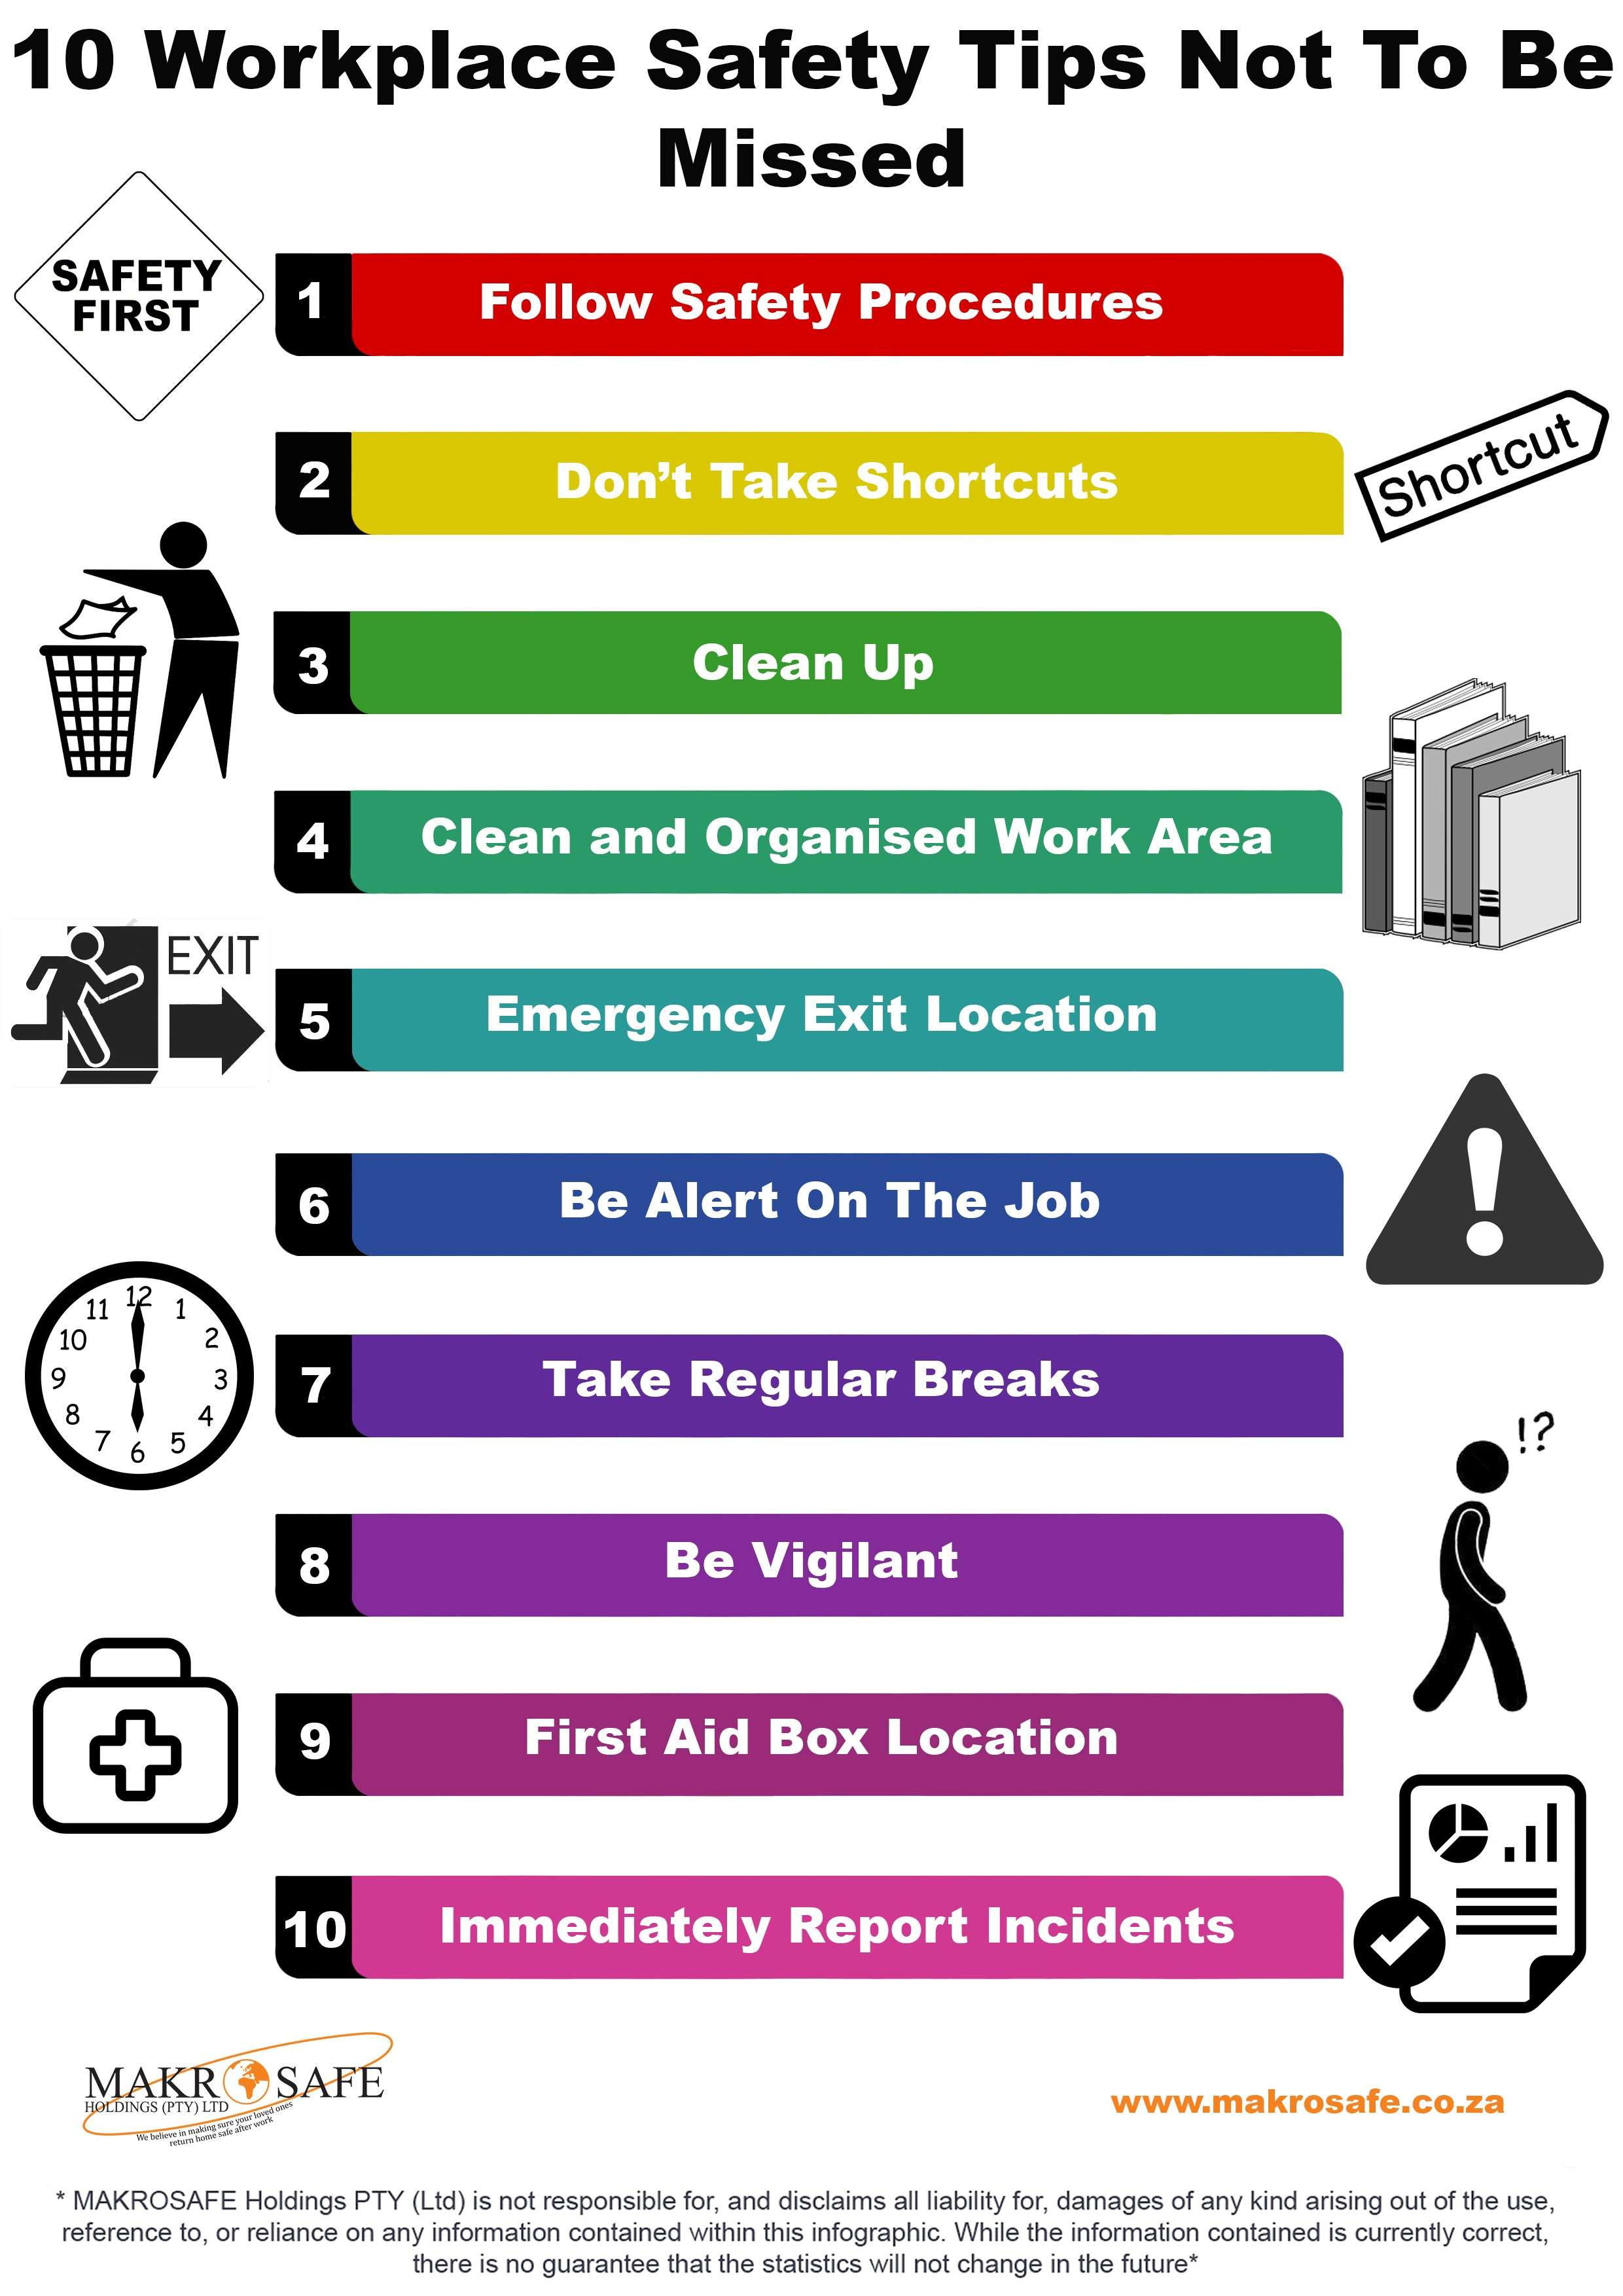 10 workplace safety tips not to be missed